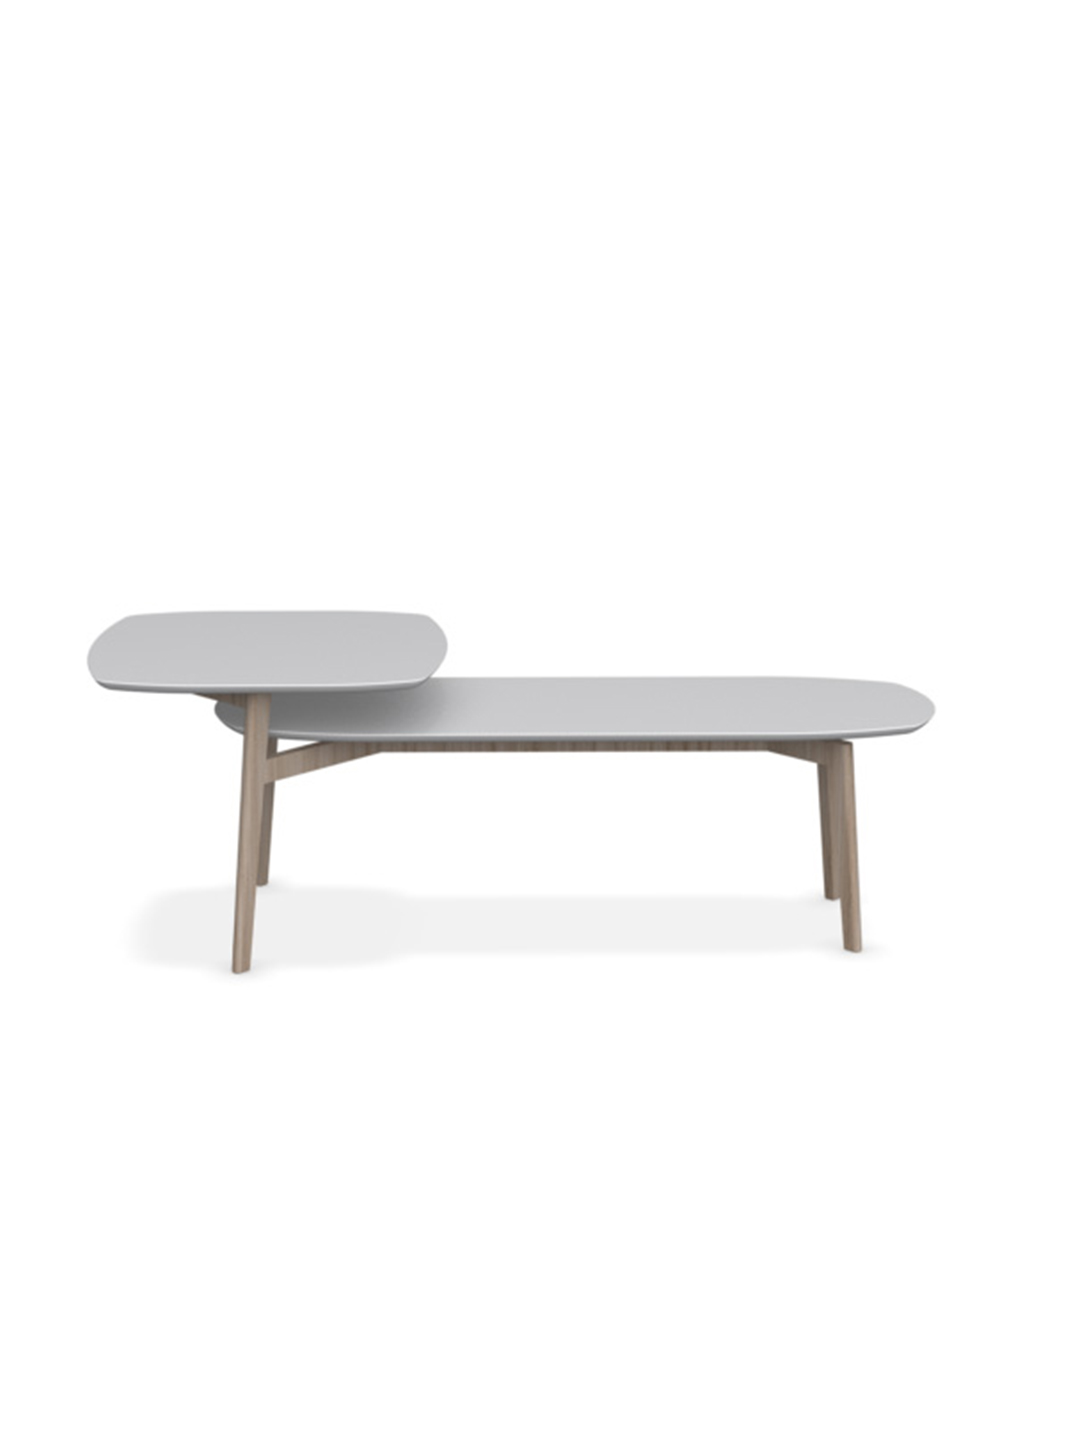 Match table caf calligaris cs 5084 d mariette for Calligaris soldes